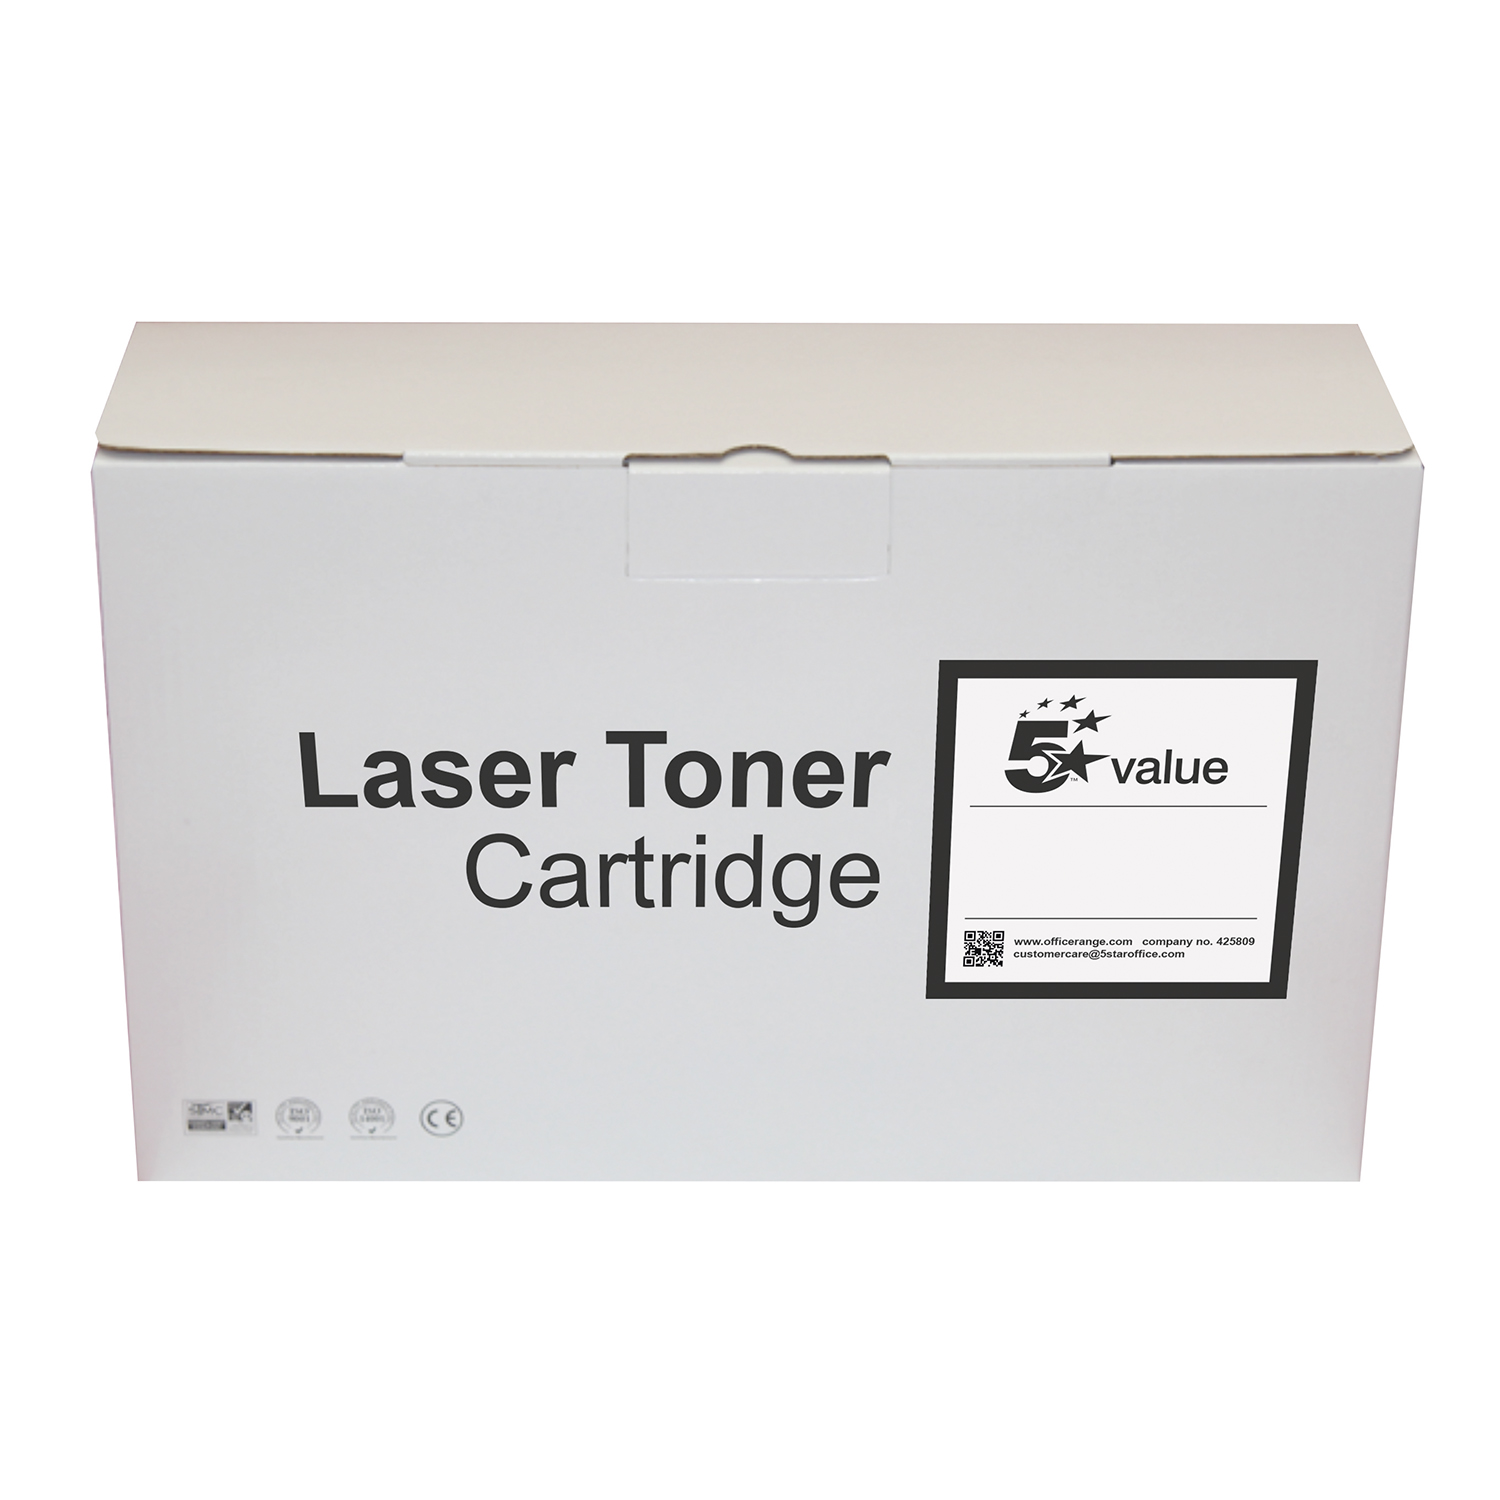 Laser Toner Cartridges 5 Star Value HP 49A Toner Cartridge Black Q5949A